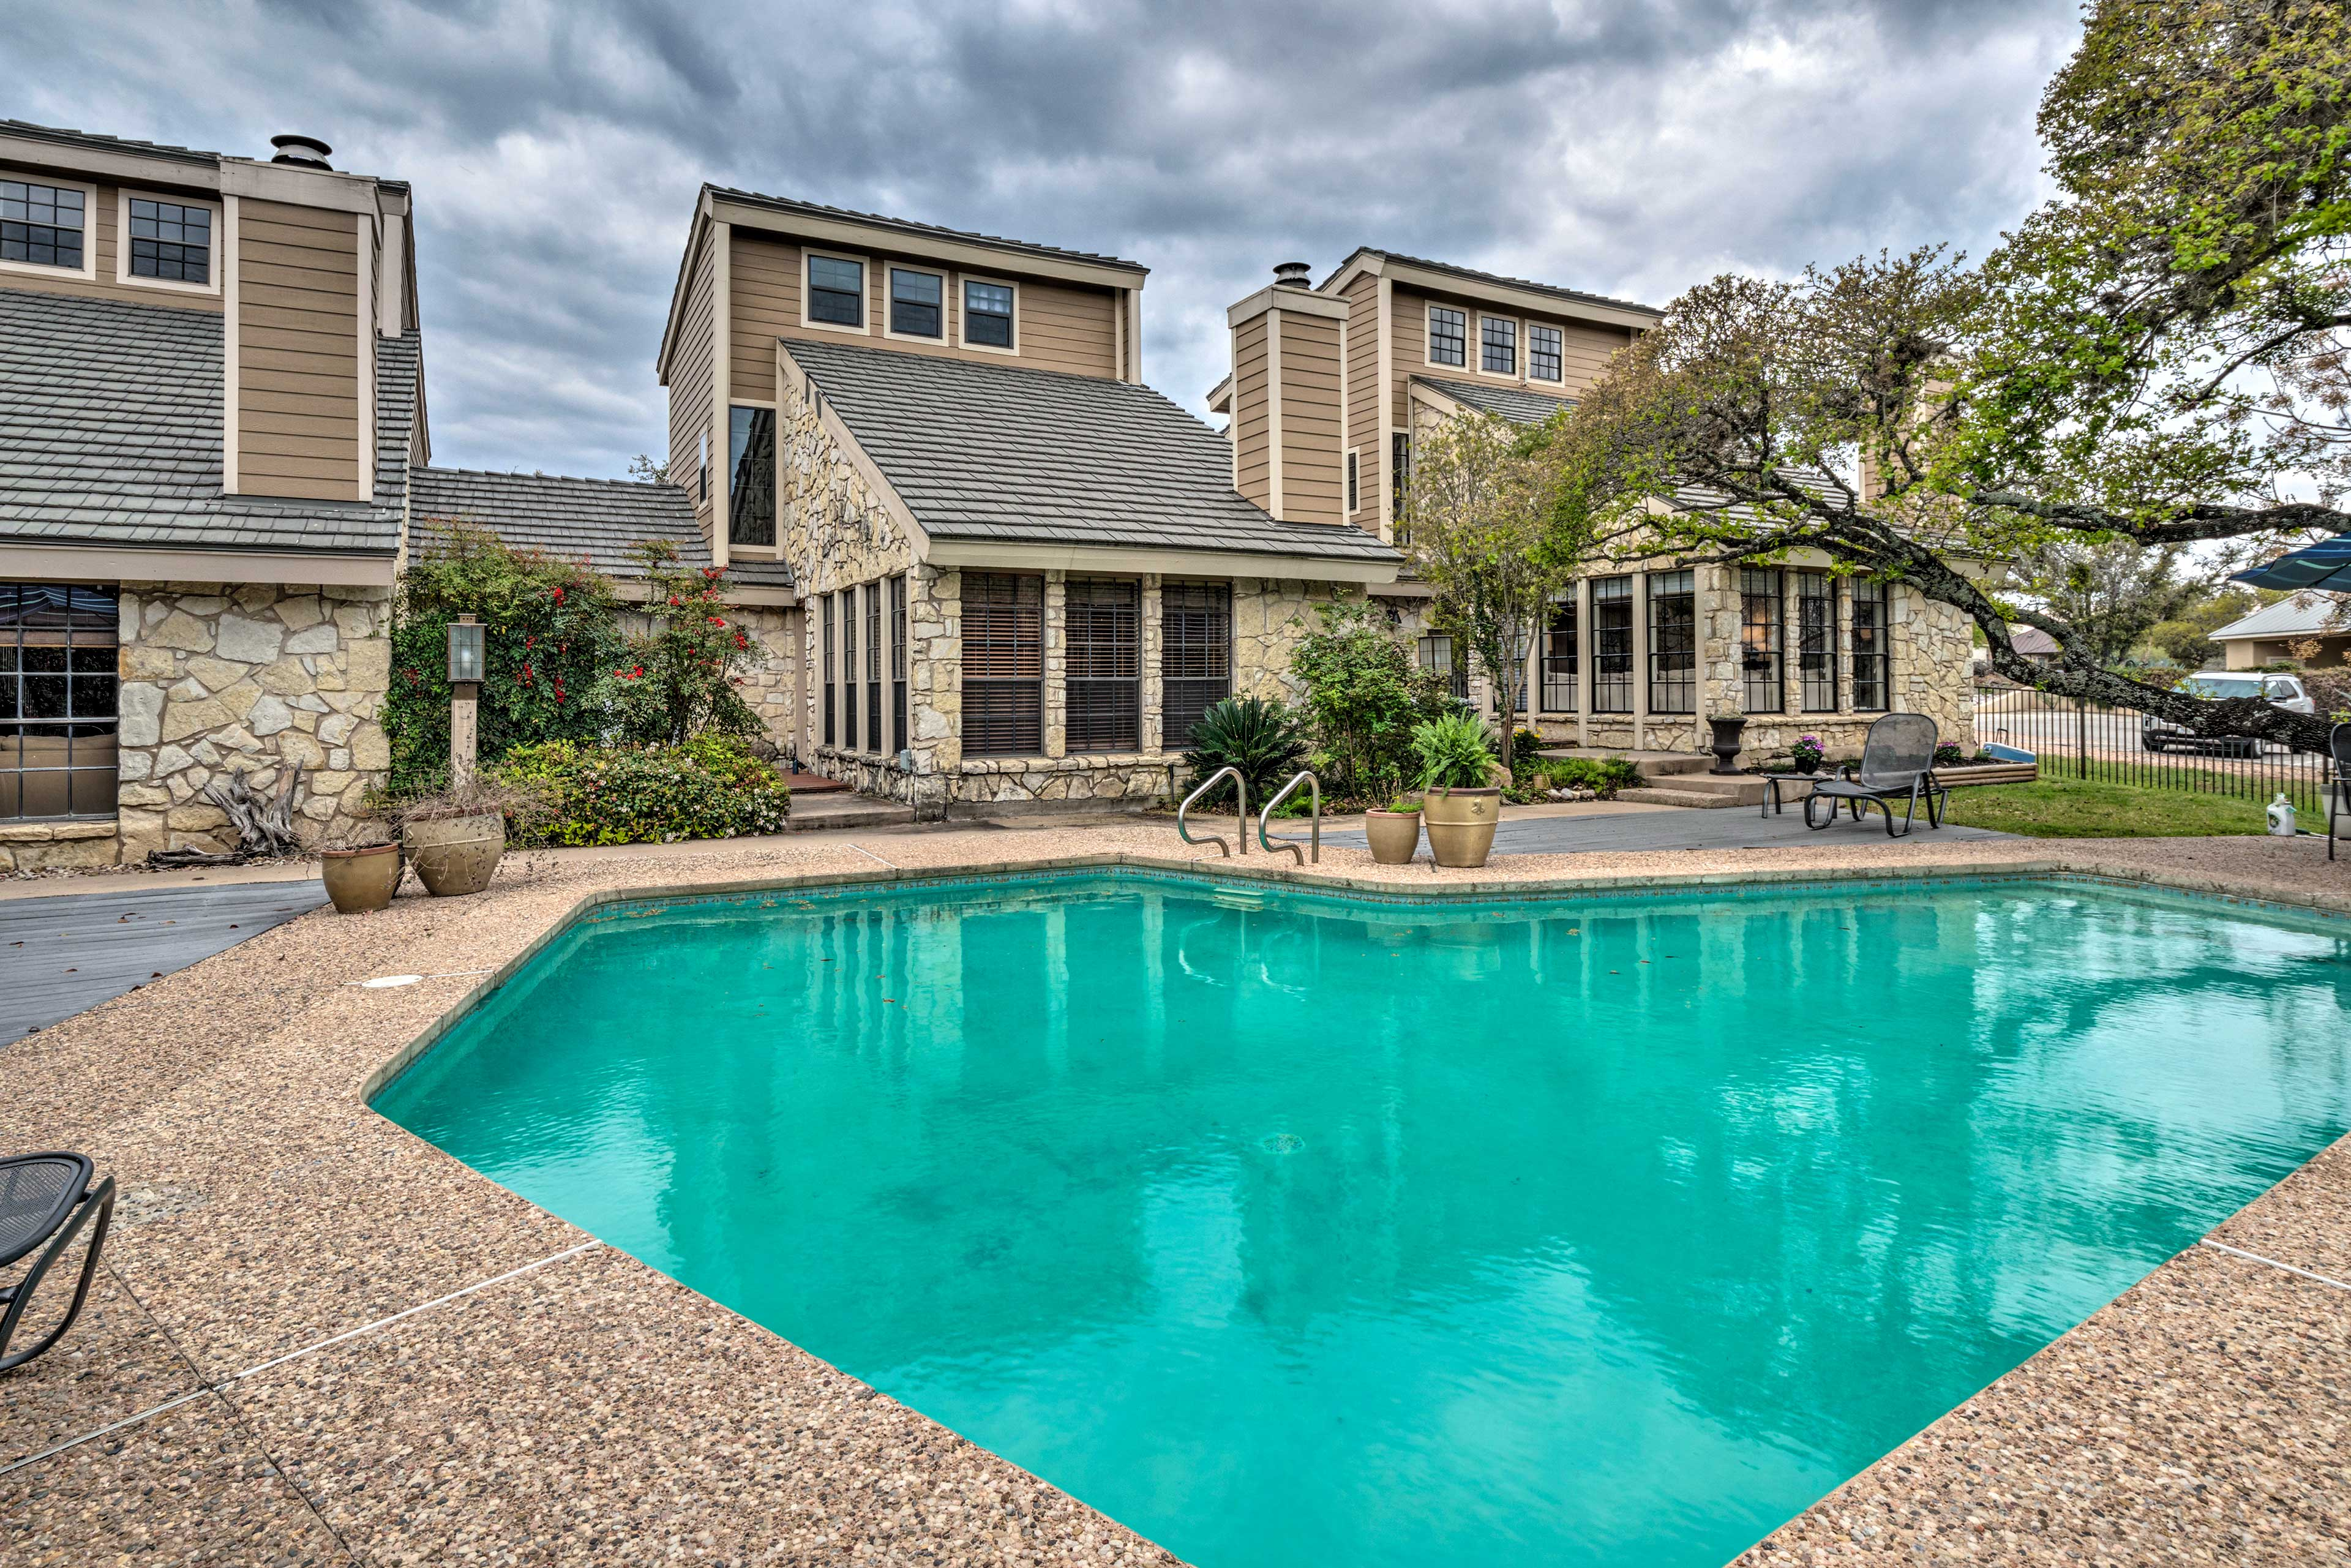 Shared with only a few neighbors, enjoy a nice quiet pool.